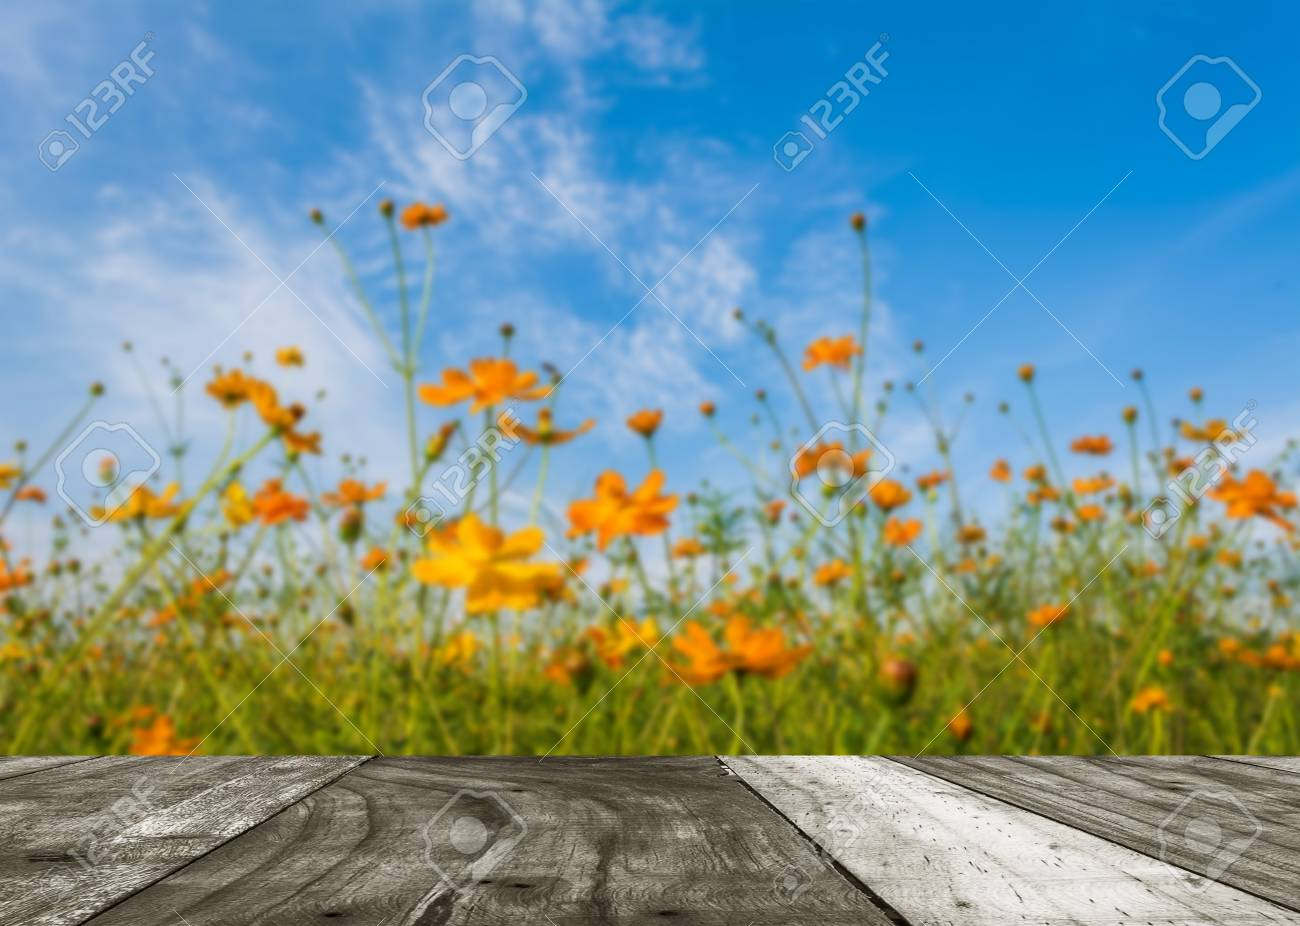 Image Of Orange And Yellow Cosmos Flowers In Garden Field On Stock